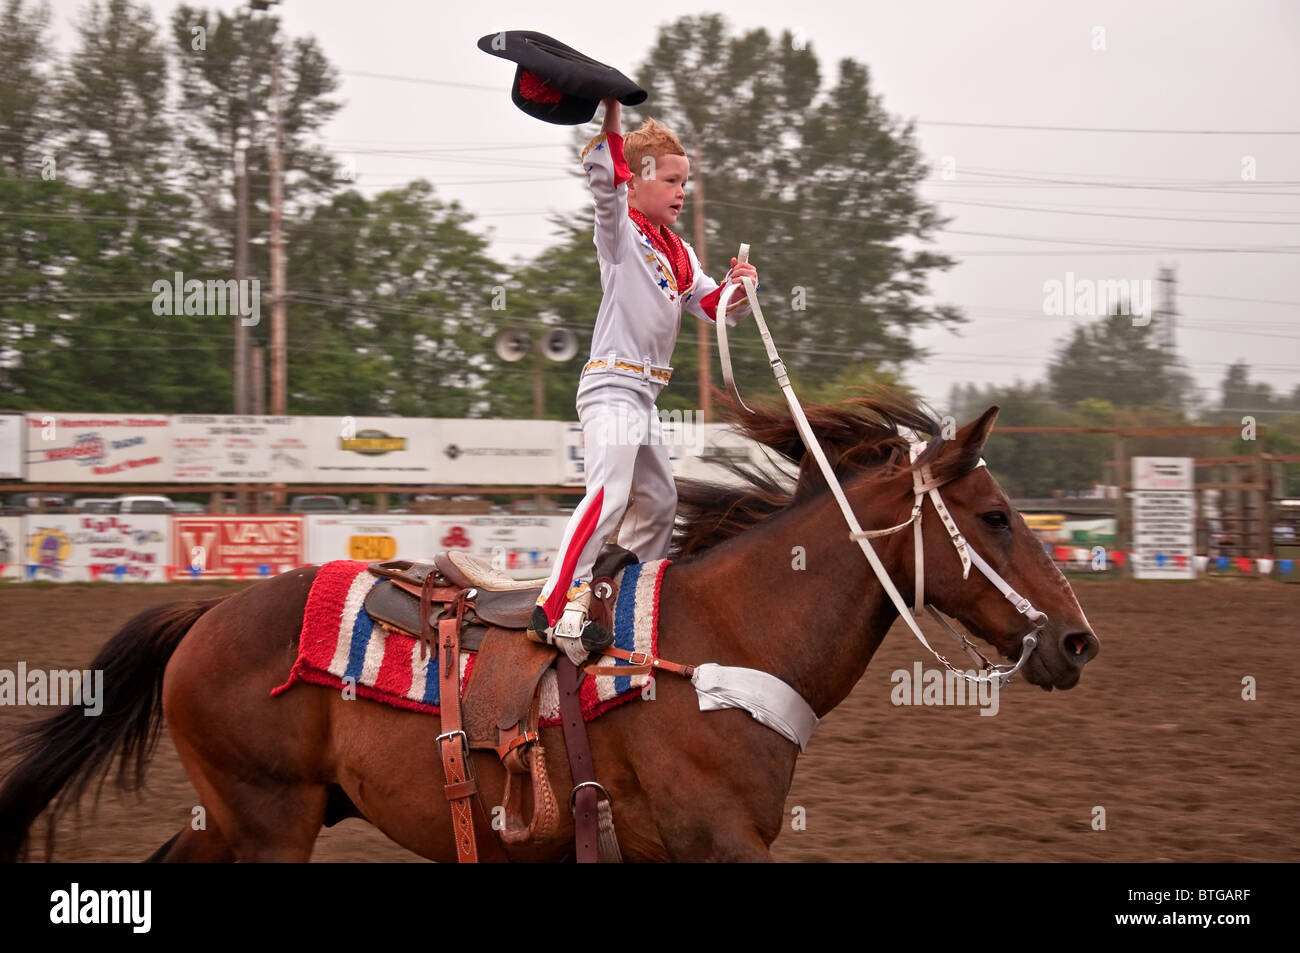 Trick On Horse Stock Photos Amp Trick On Horse Stock Images